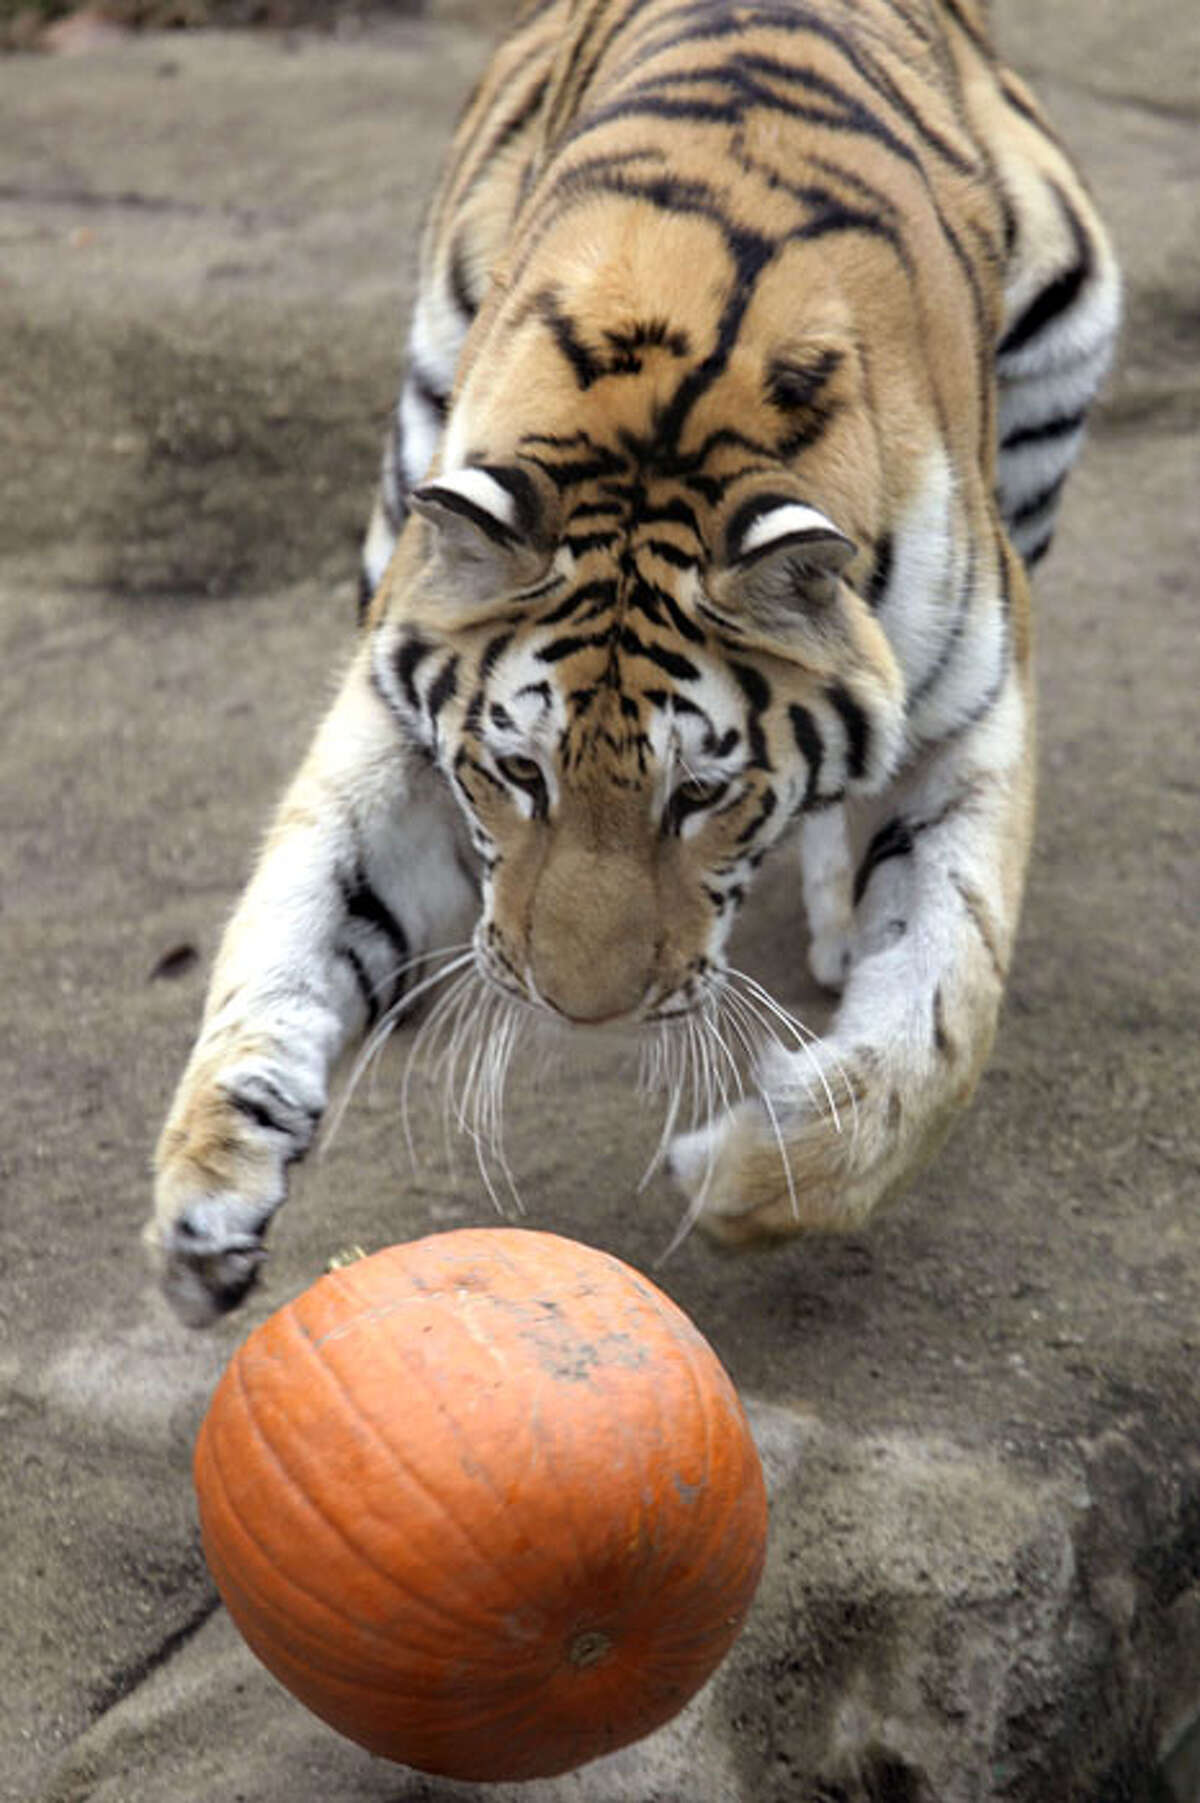 Whirl, a two-and-a-half-year-old Amur Tiger chases a pumpkin at Chicago Zoological Society's Brookfield Zoo in Brookfield, Ill. on Wednesday, Oct. 28, 2009. With the Halloween season upon us, several of the animals, including lions, tigers, polar bears, brown bears, and the gorillas, were given pumpkins to enjoy and play with as part of the zoowide behavioral enrichment program.